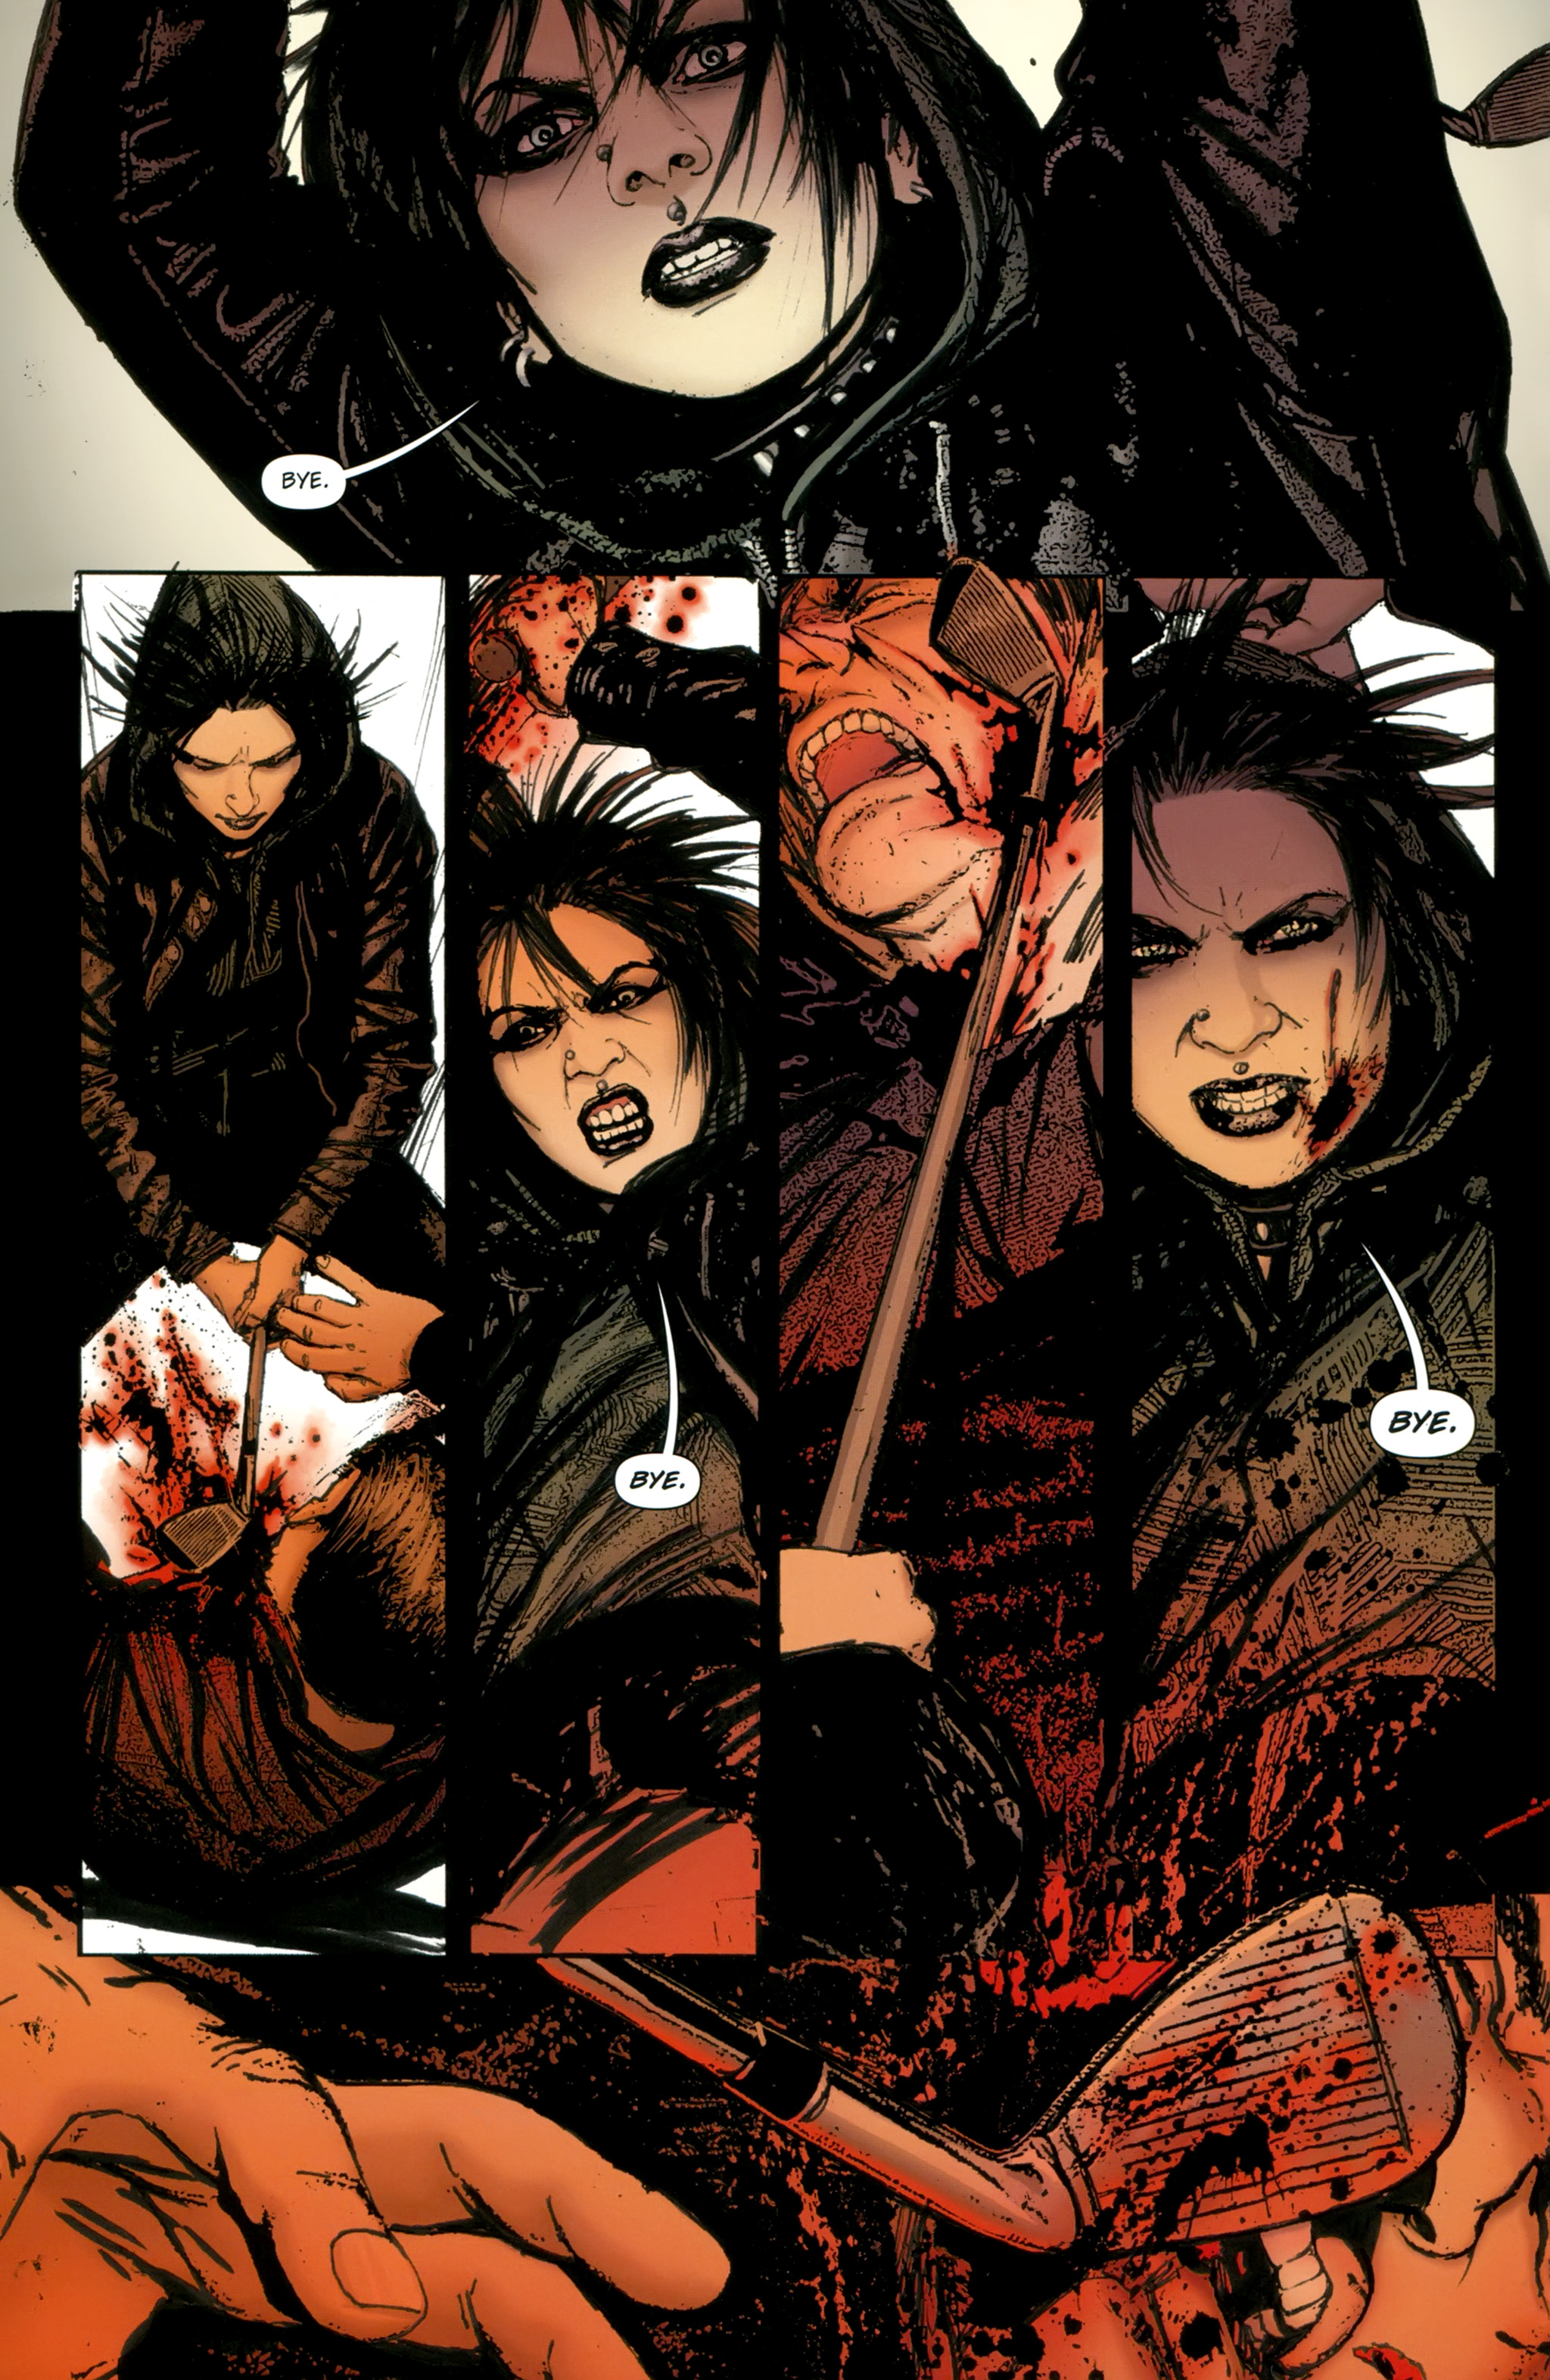 Read online The Girl With the Dragon Tattoo comic -  Issue # TPB 2 - 100